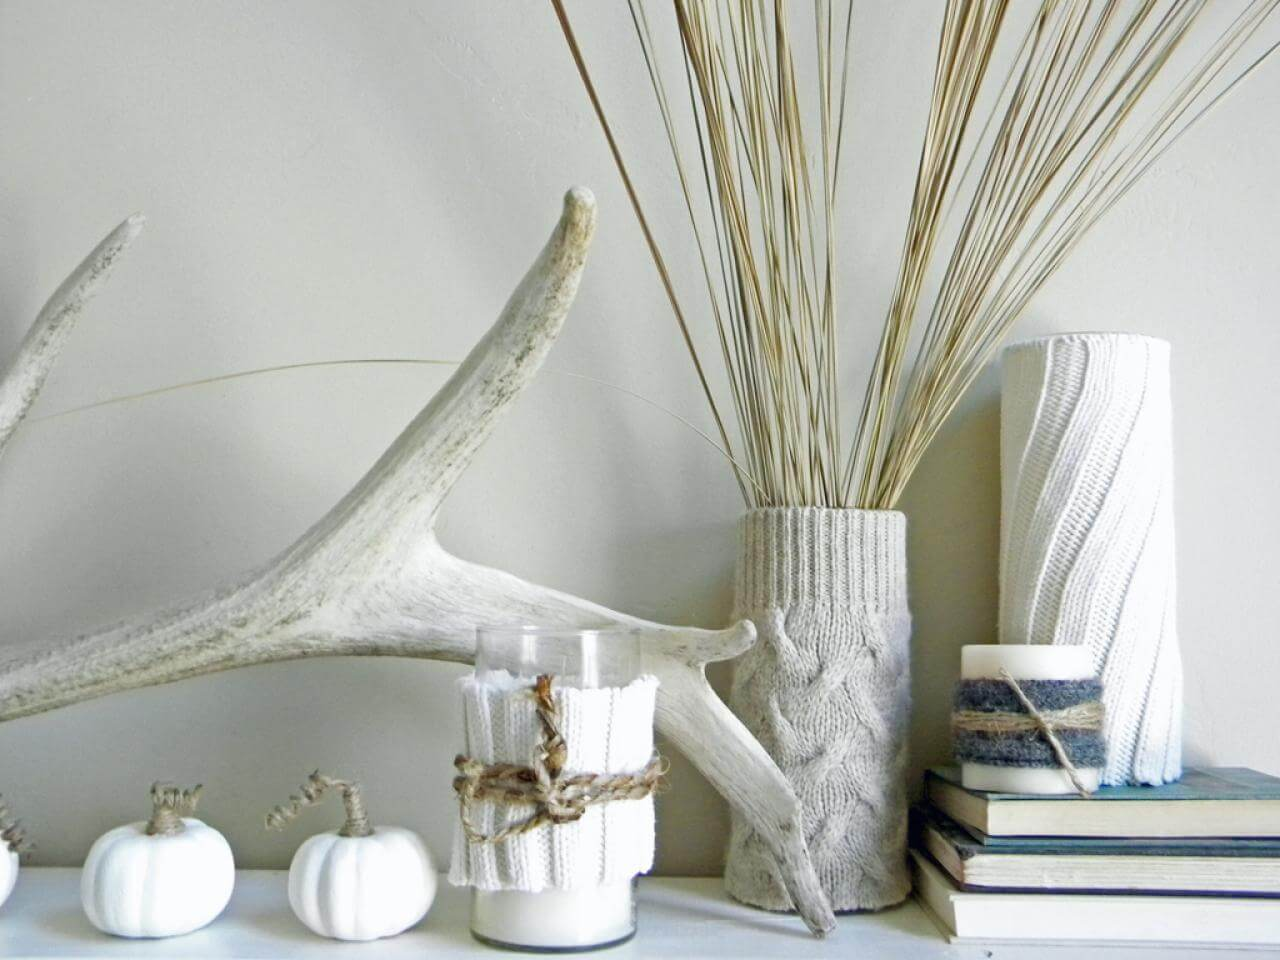 Sometimes simple white contrasts can be the most eye-catching